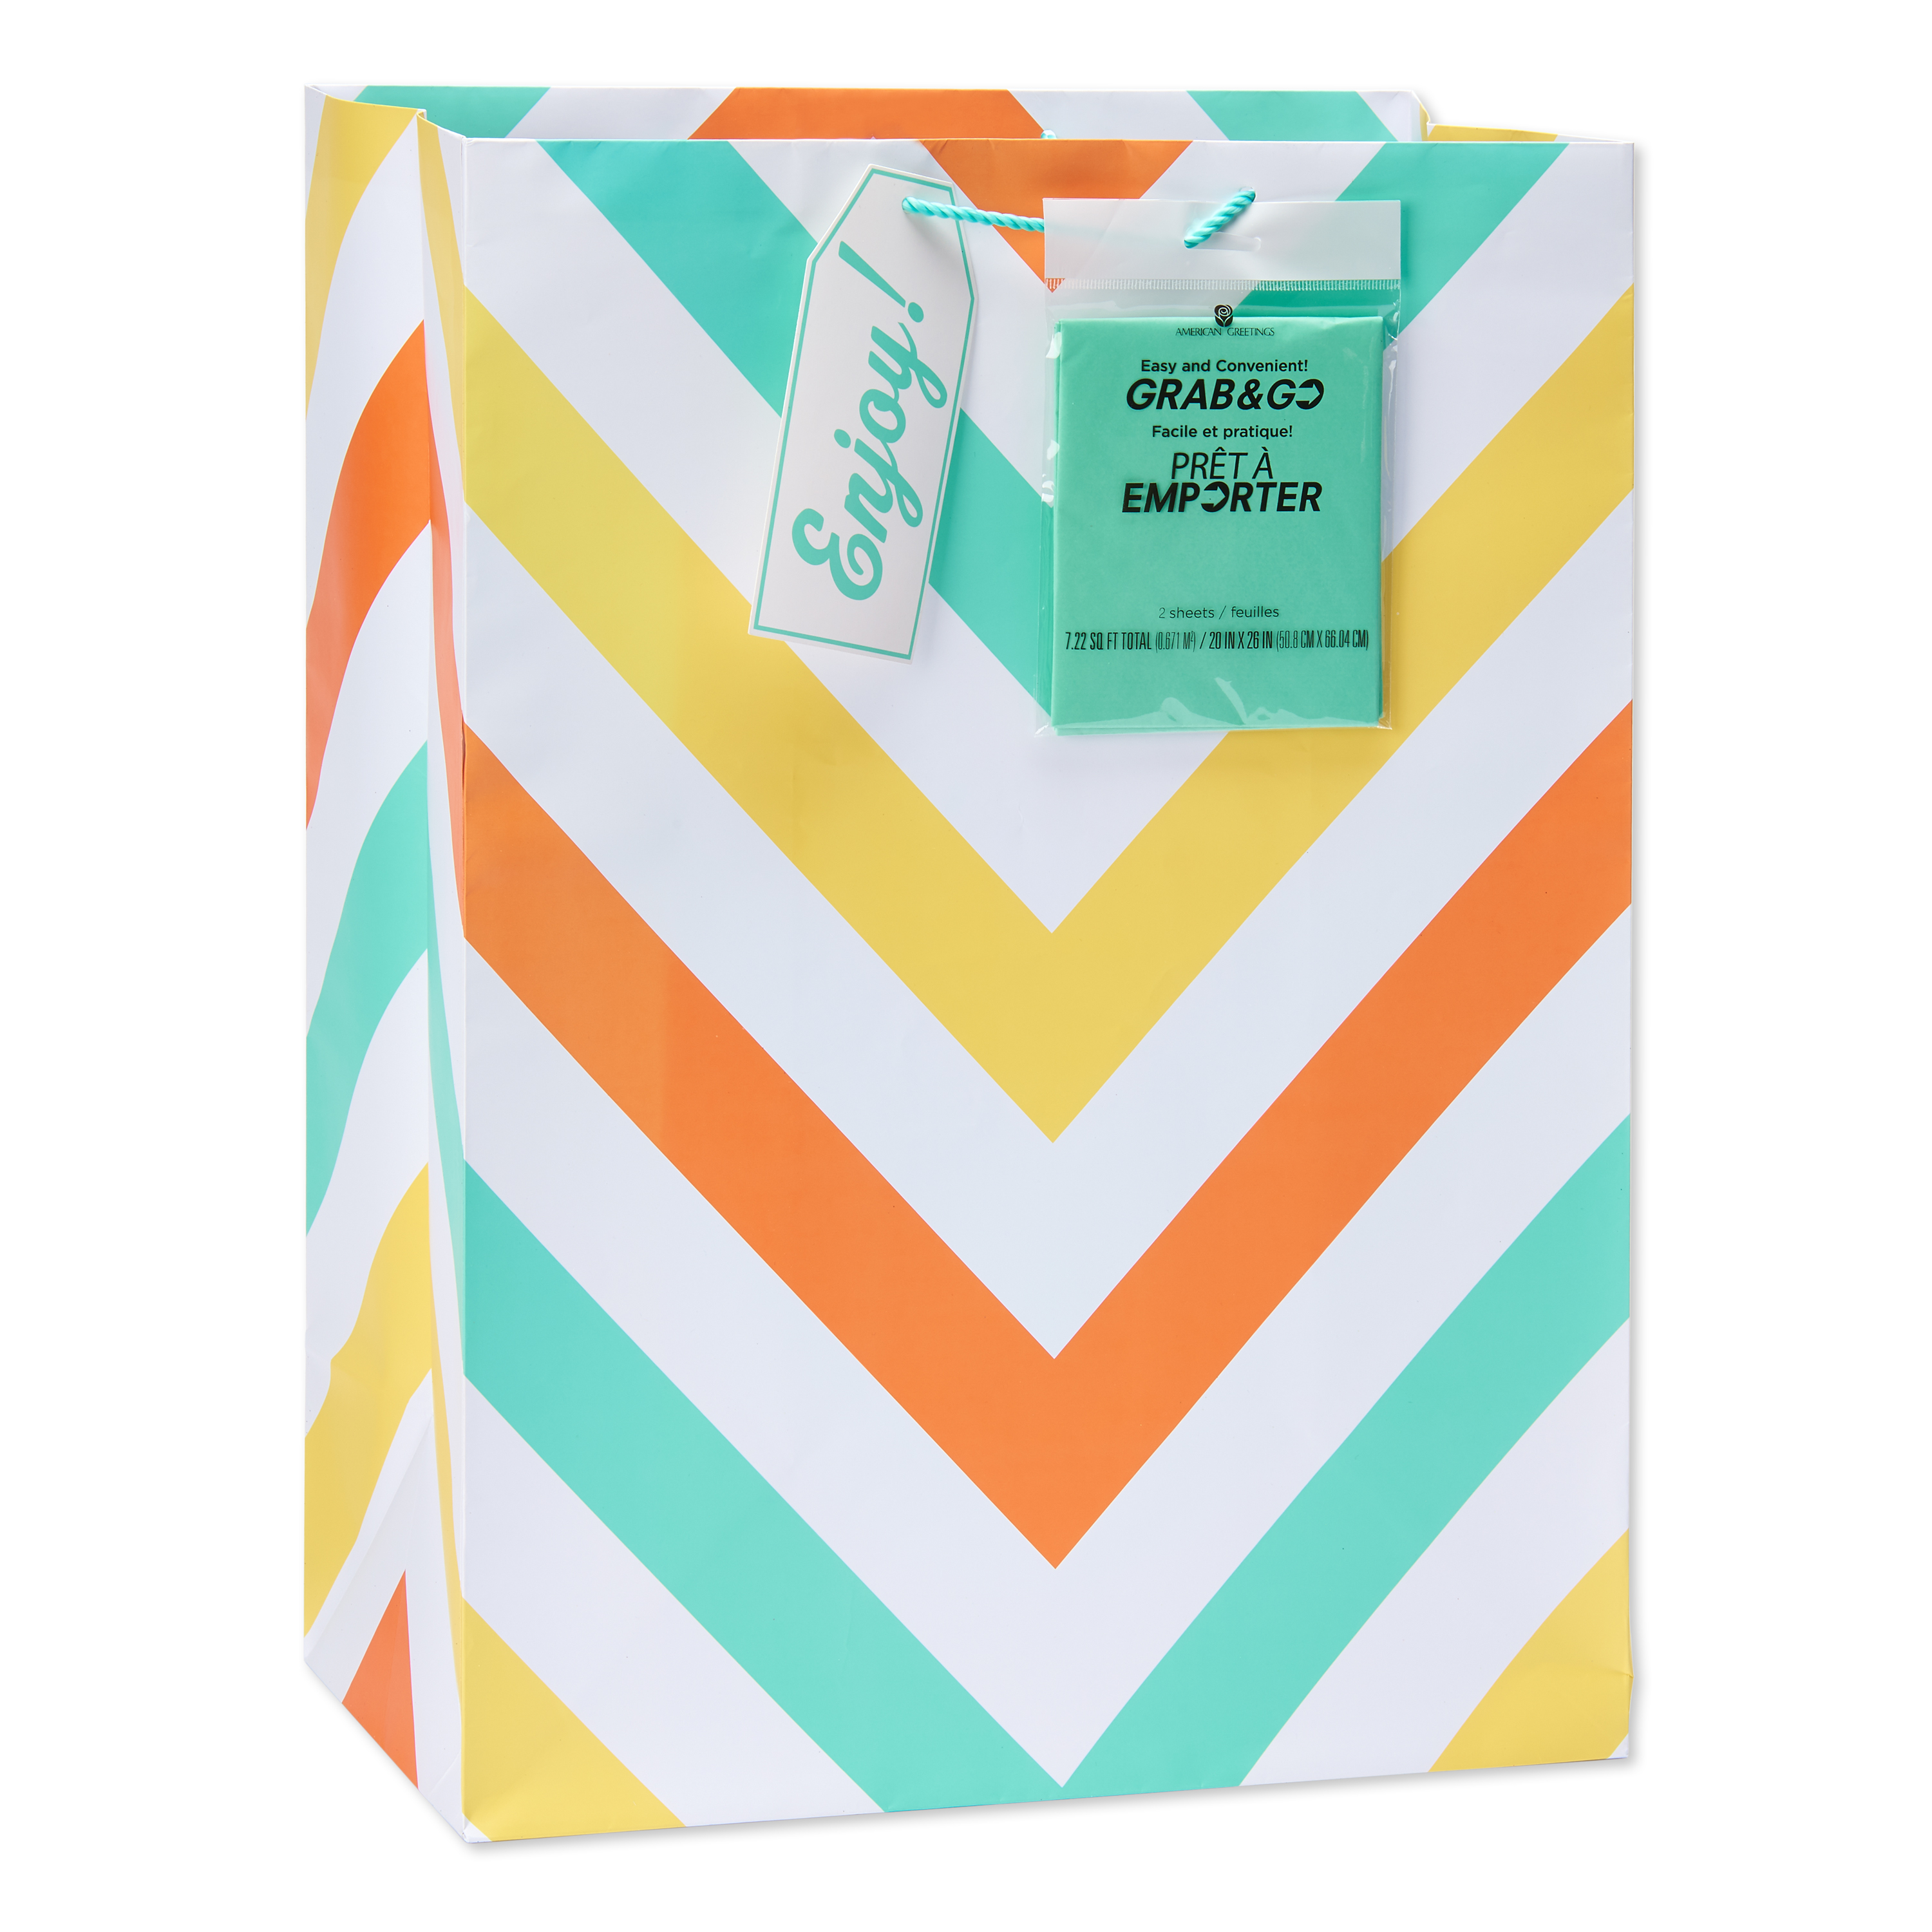 American Greetings Jumbo Chevron Stripes Gift Bag with Teal Tissue Paper